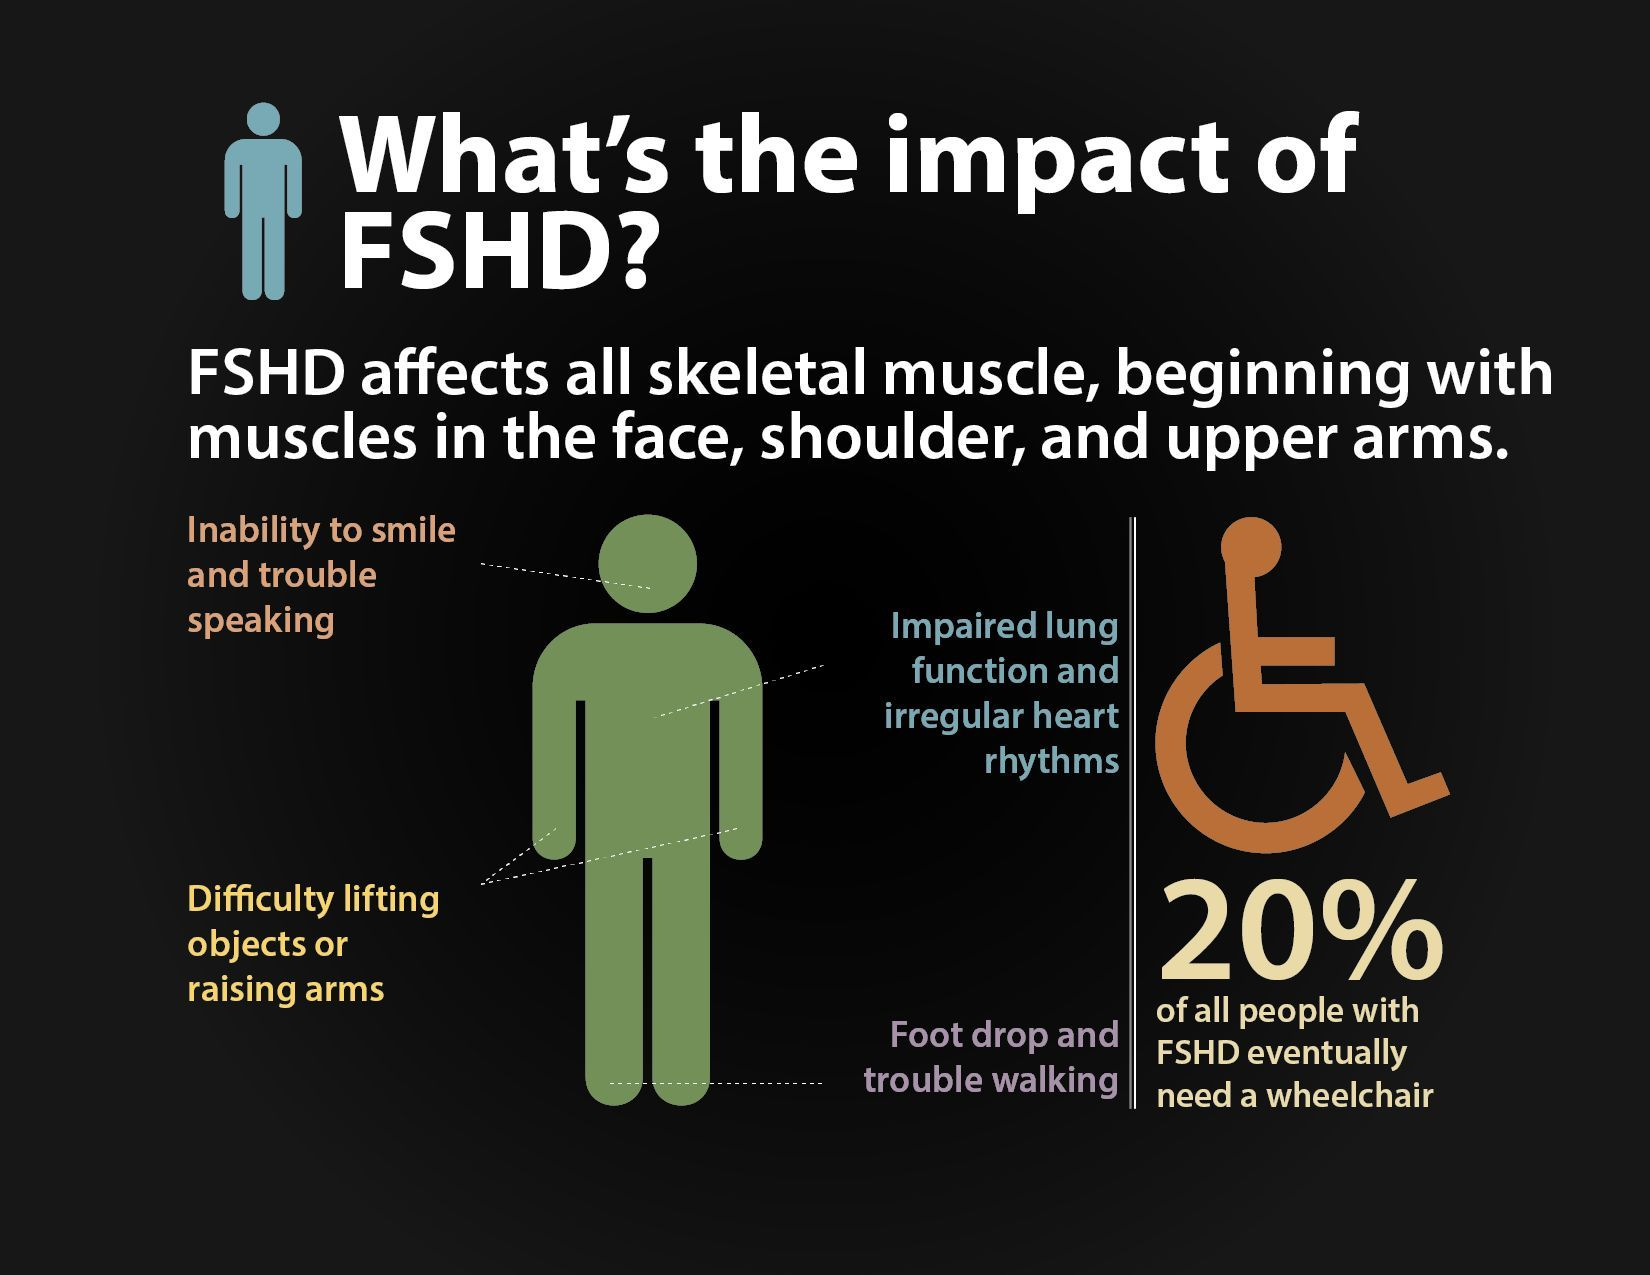 FSHD affects all skeletal muscle, beginning with muscles in